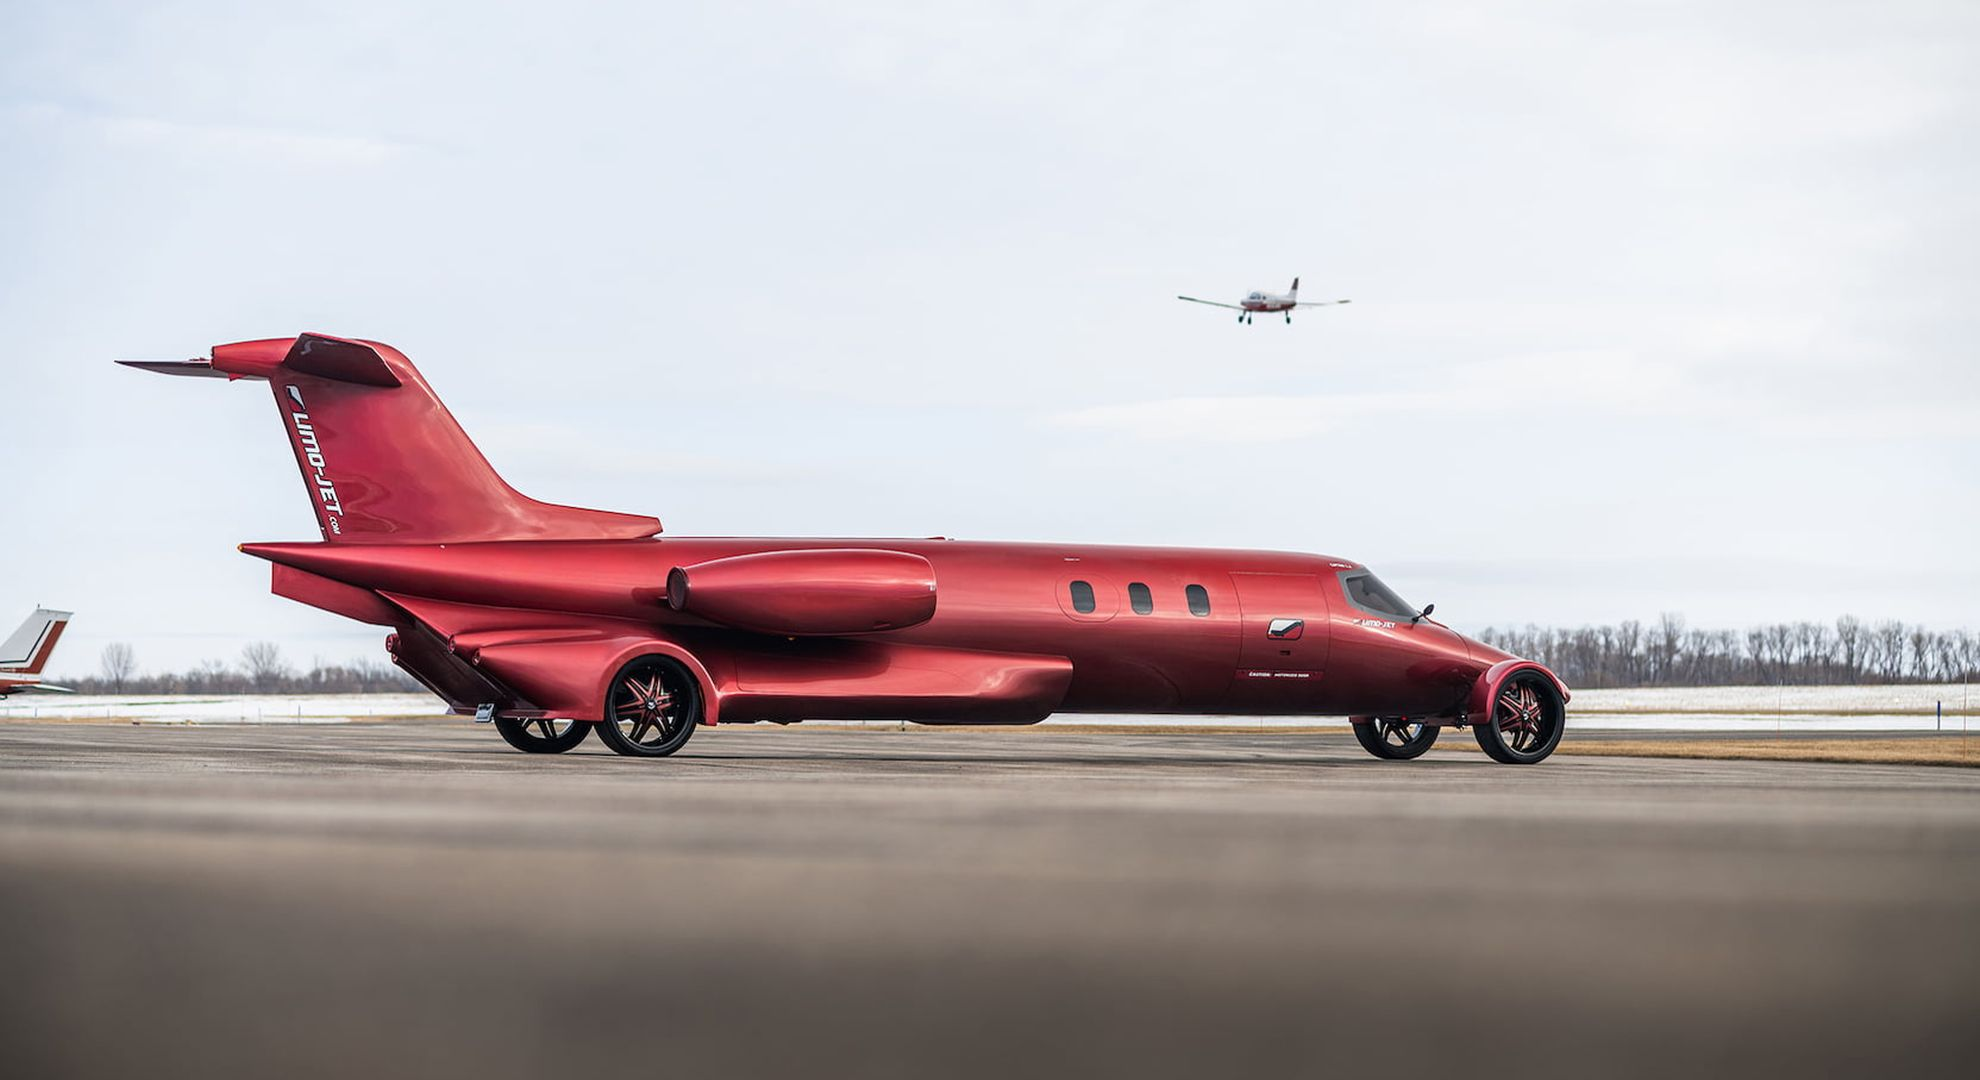 This weird and wonderful 'Limo-Jet' is a welcome distraction from the pandemic